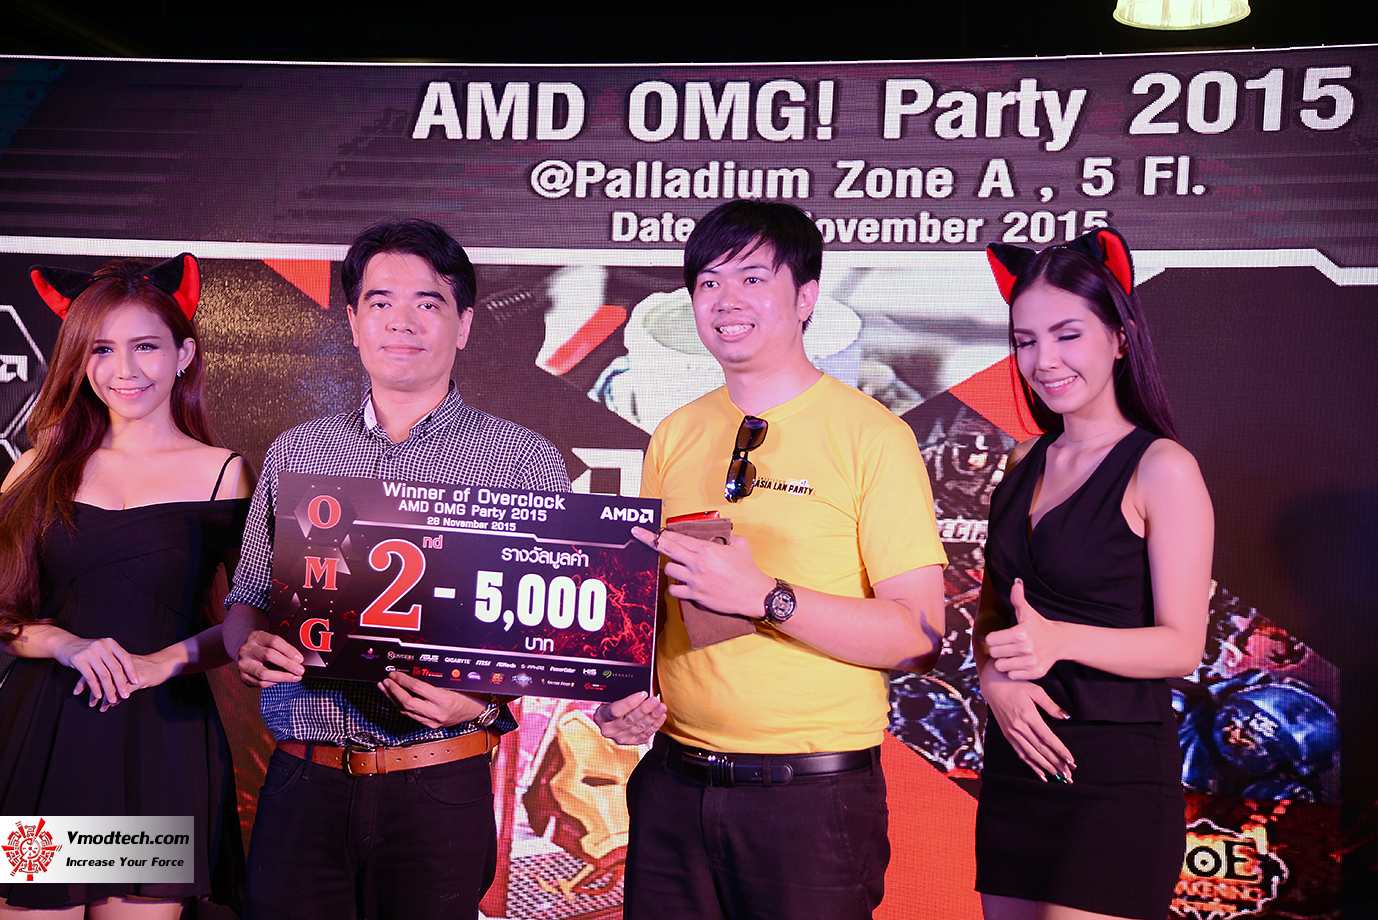 dsc 7883 AMD OMG! Party 2015 (AMD Overclock Modding Gaming Party 2015)